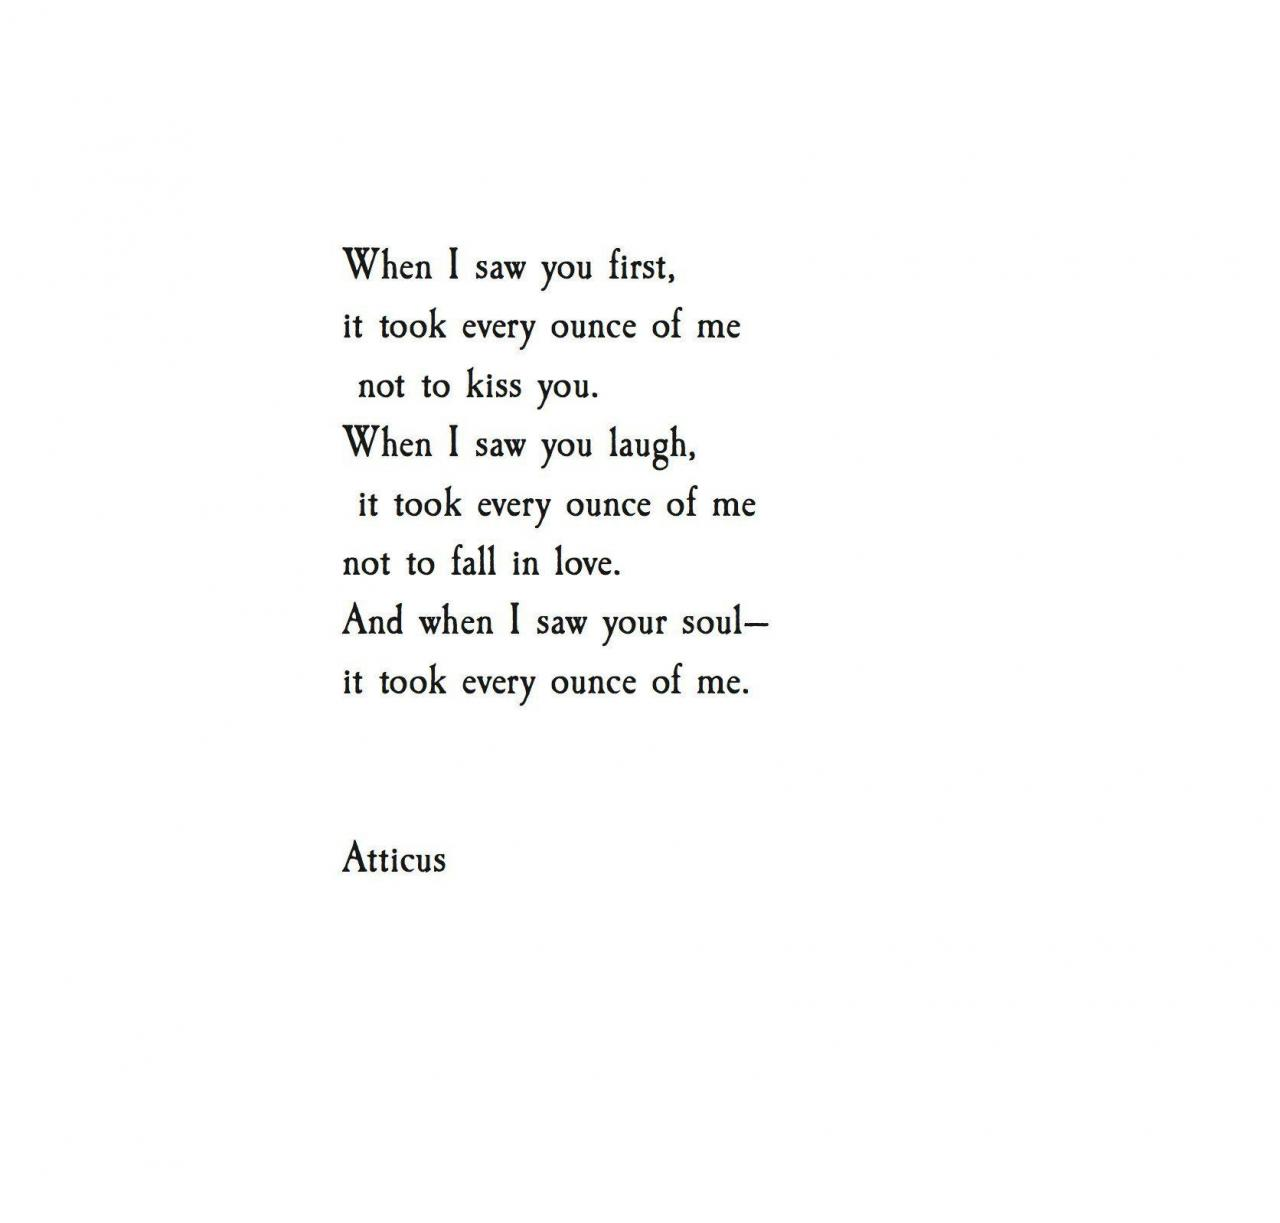 Atticus Poetry On Twitter  Quotespoem Quoteswise Quotesnew Love